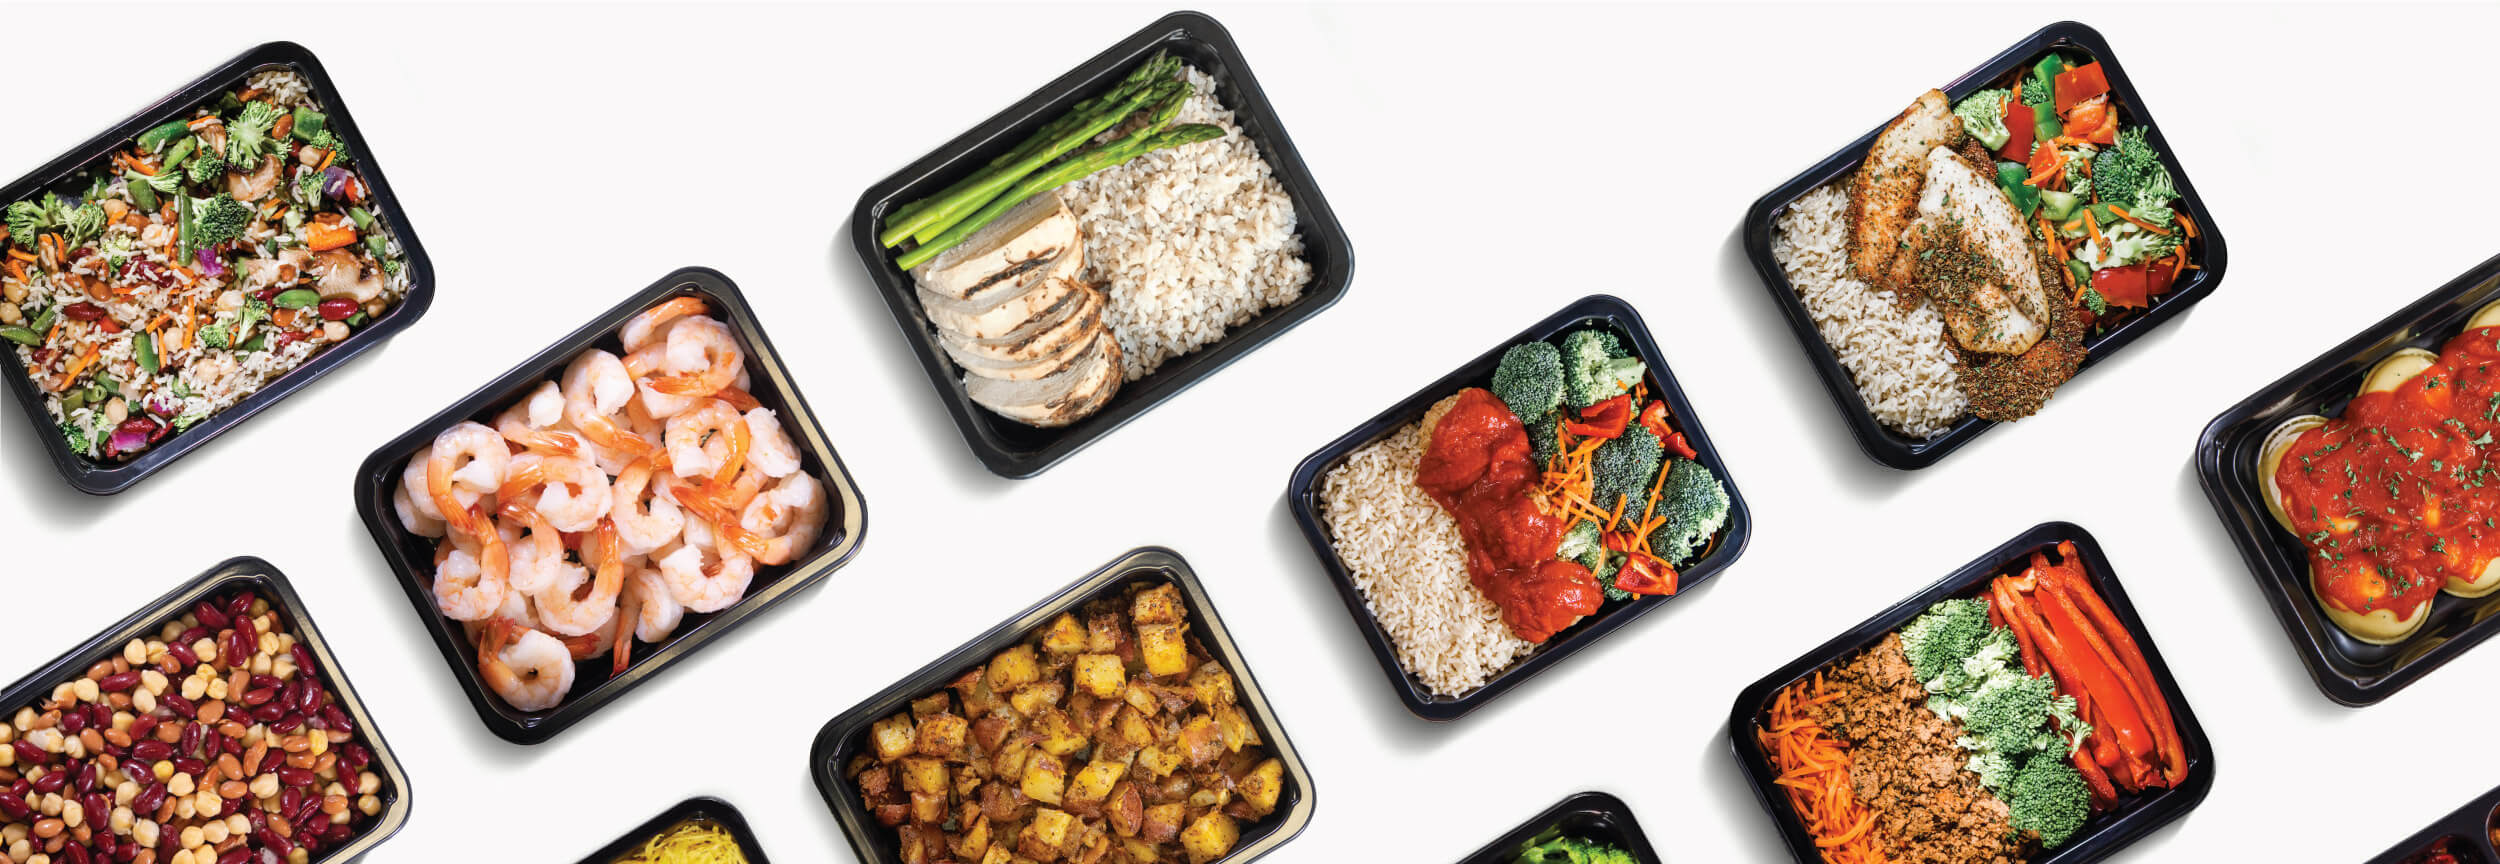 Top down picture of healthy oklahoma city fitness meal assortment on a table